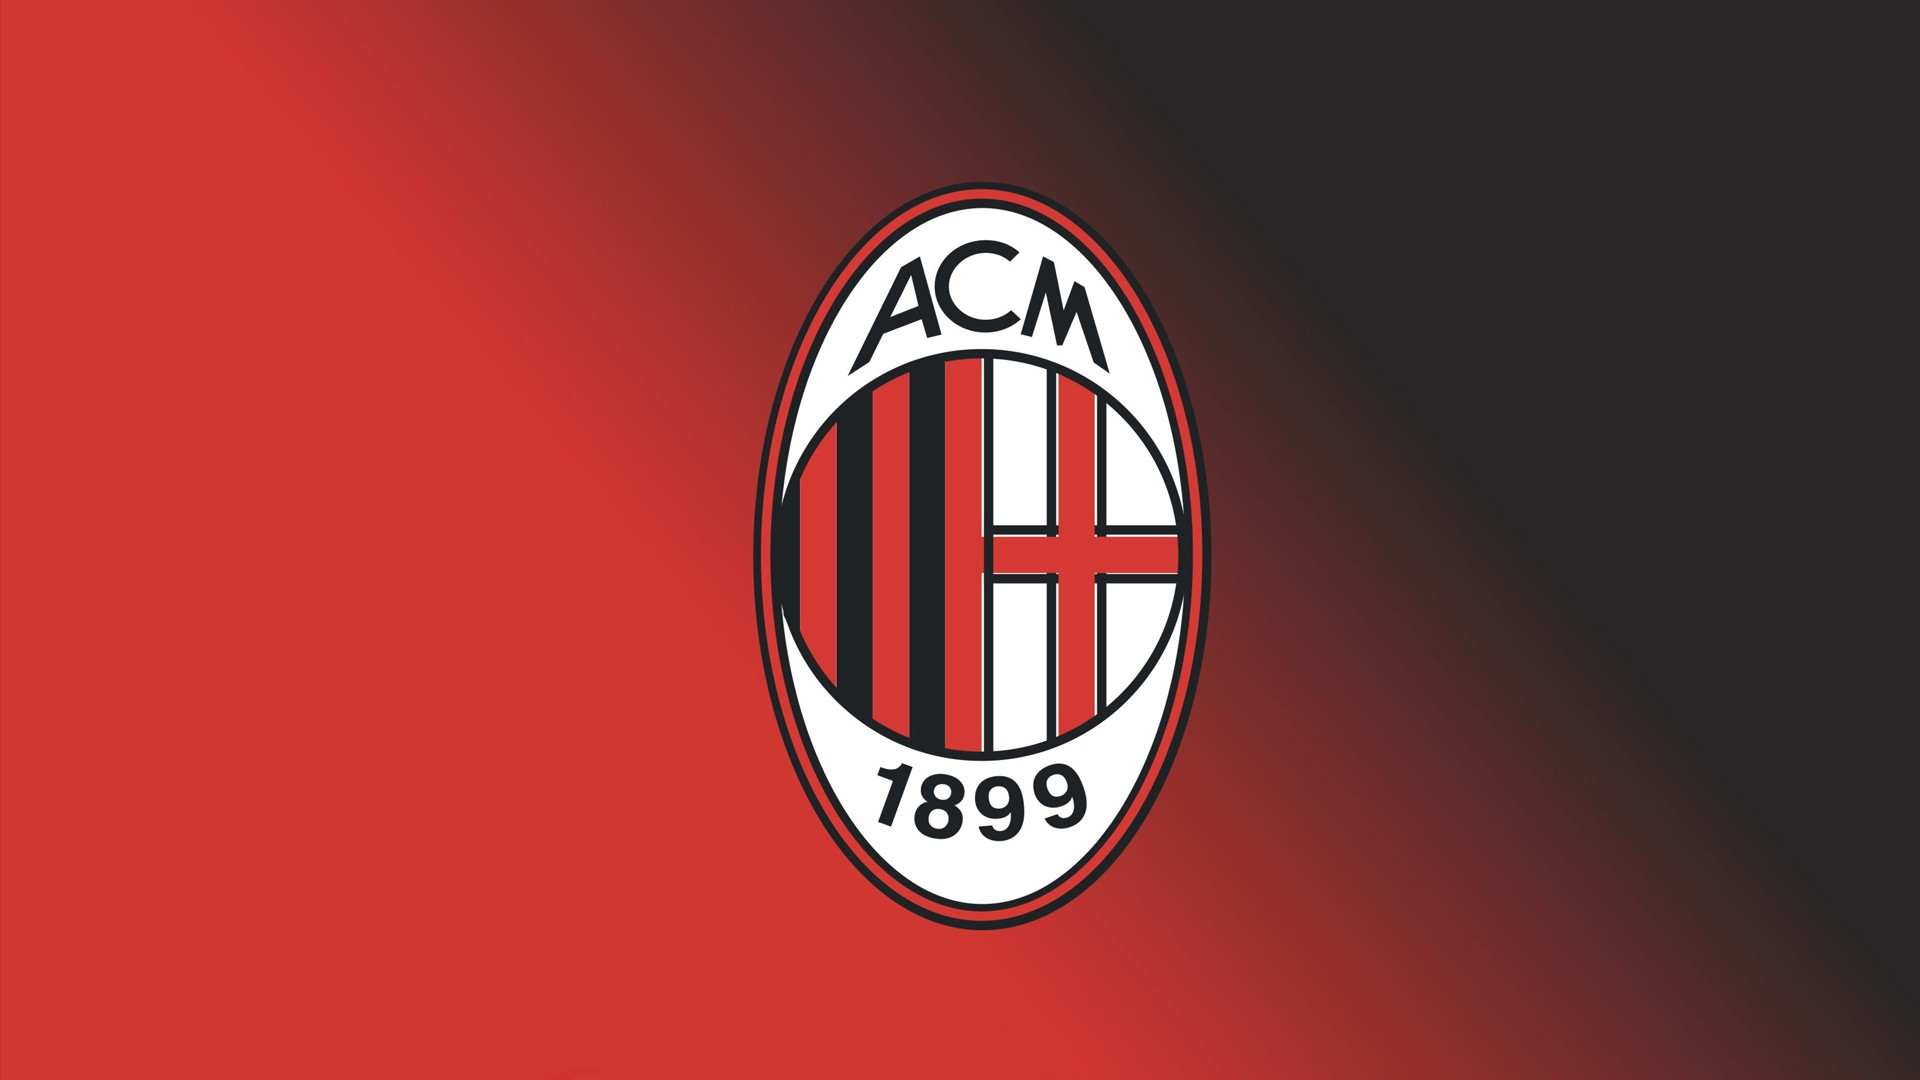 hd wallpaper AC Milan FC Football Logo FREE 4U WALLPAPERS 1920x1080